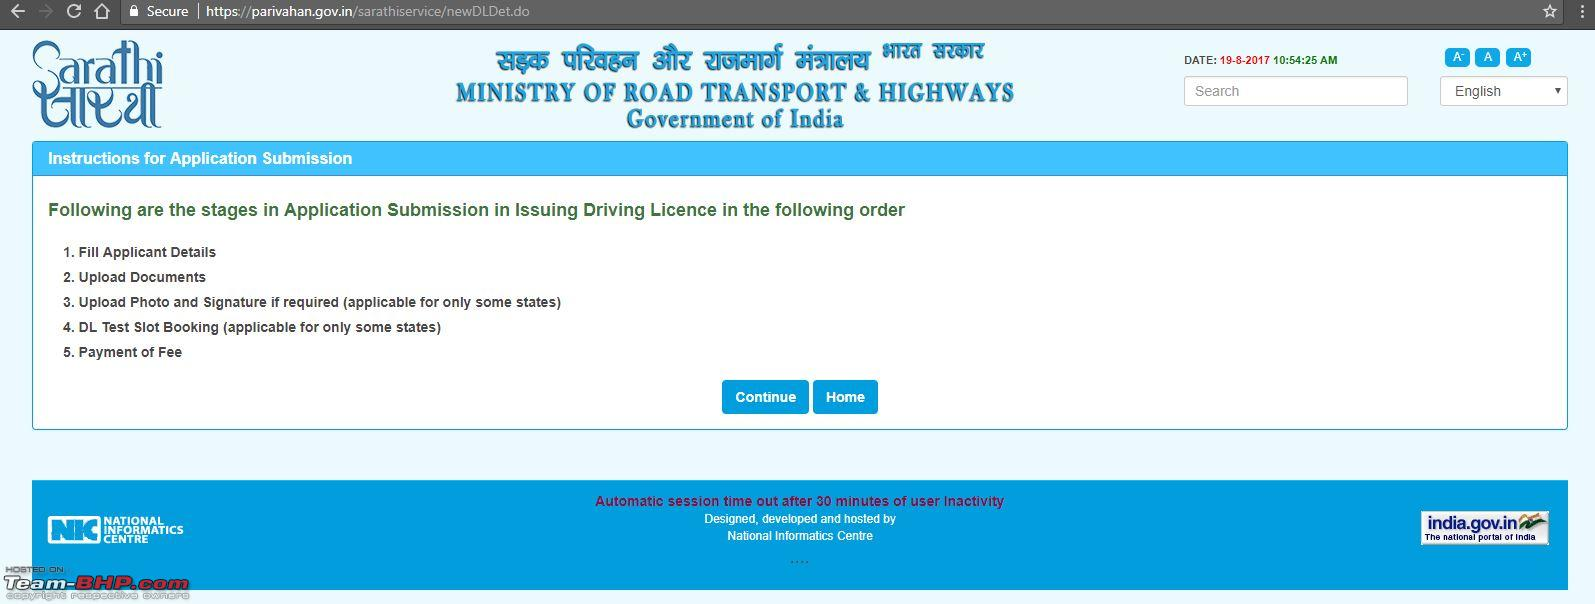 Guide: How to get a Driving Licence in Pune without an agent